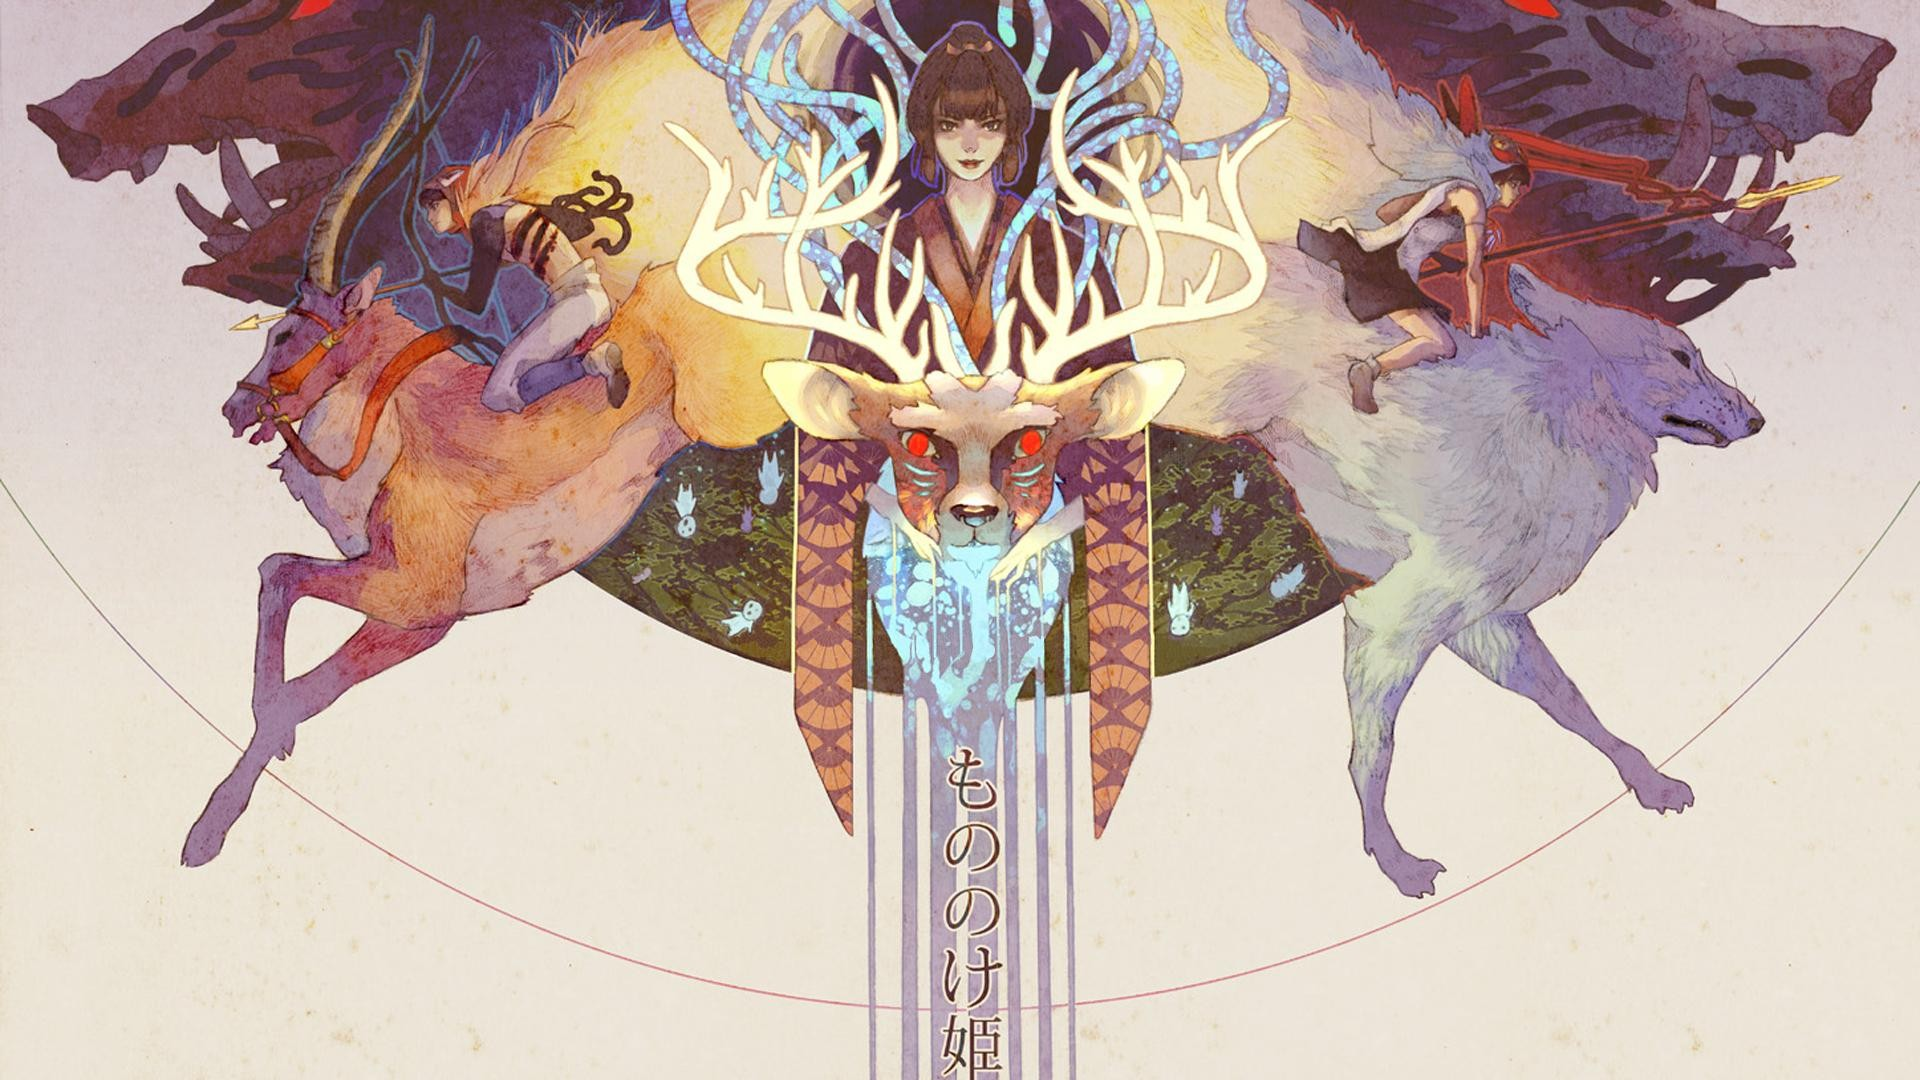 General-1920x1080-Princess-Mononoke-deer-anime-artwork-Studio-Ghibli-wallpaper-wp3606117